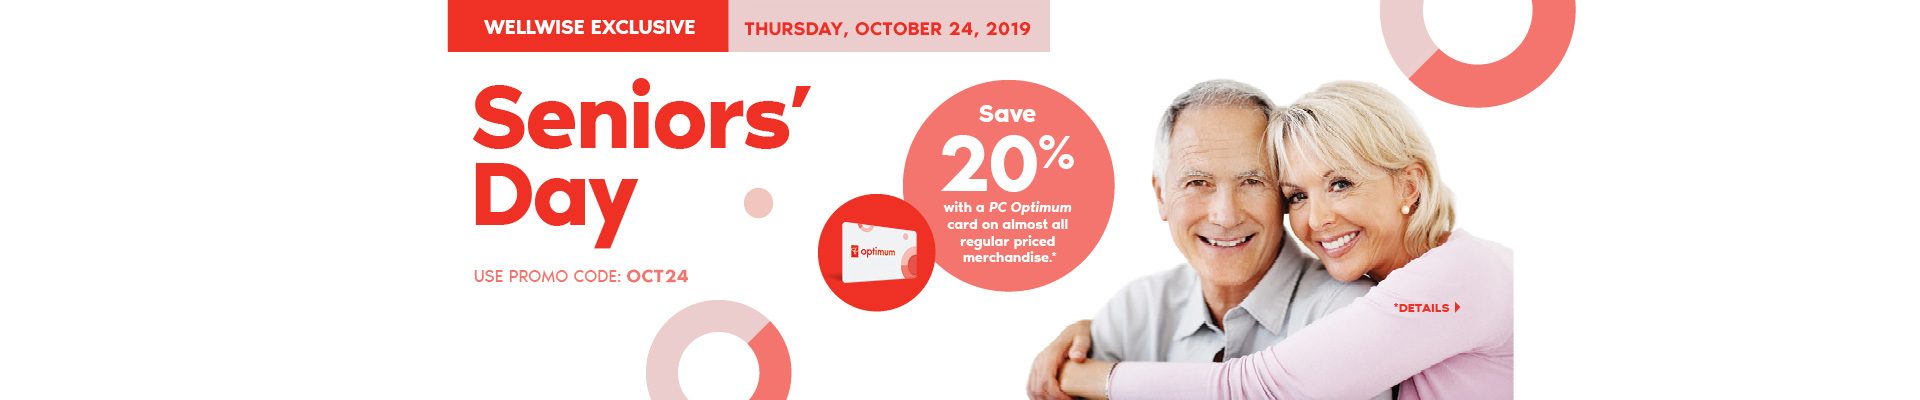 Wellwise by Shoppers Drug Mart Exclusive. Seniors' Day Thursday October 24, 2019. Save 20% with a PC Optimum card on almost all regular priced merchandise. * Use promo code: OCT24. Details.